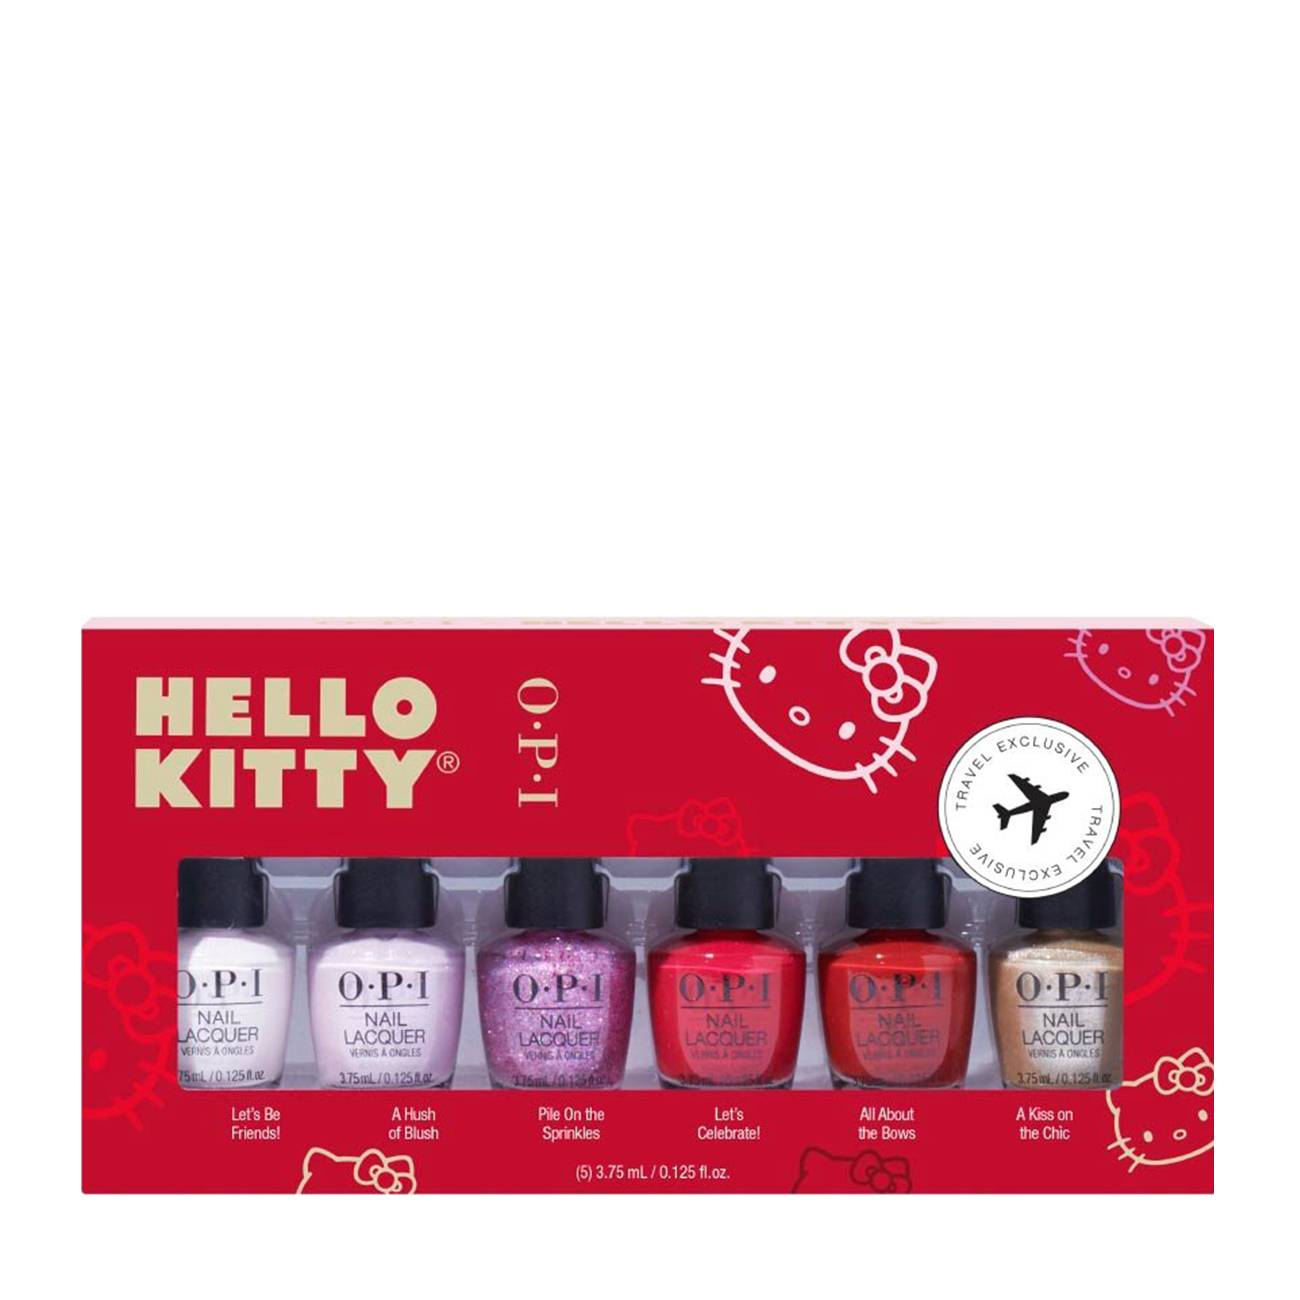 HELLO KITTY SET 22ml imagine produs